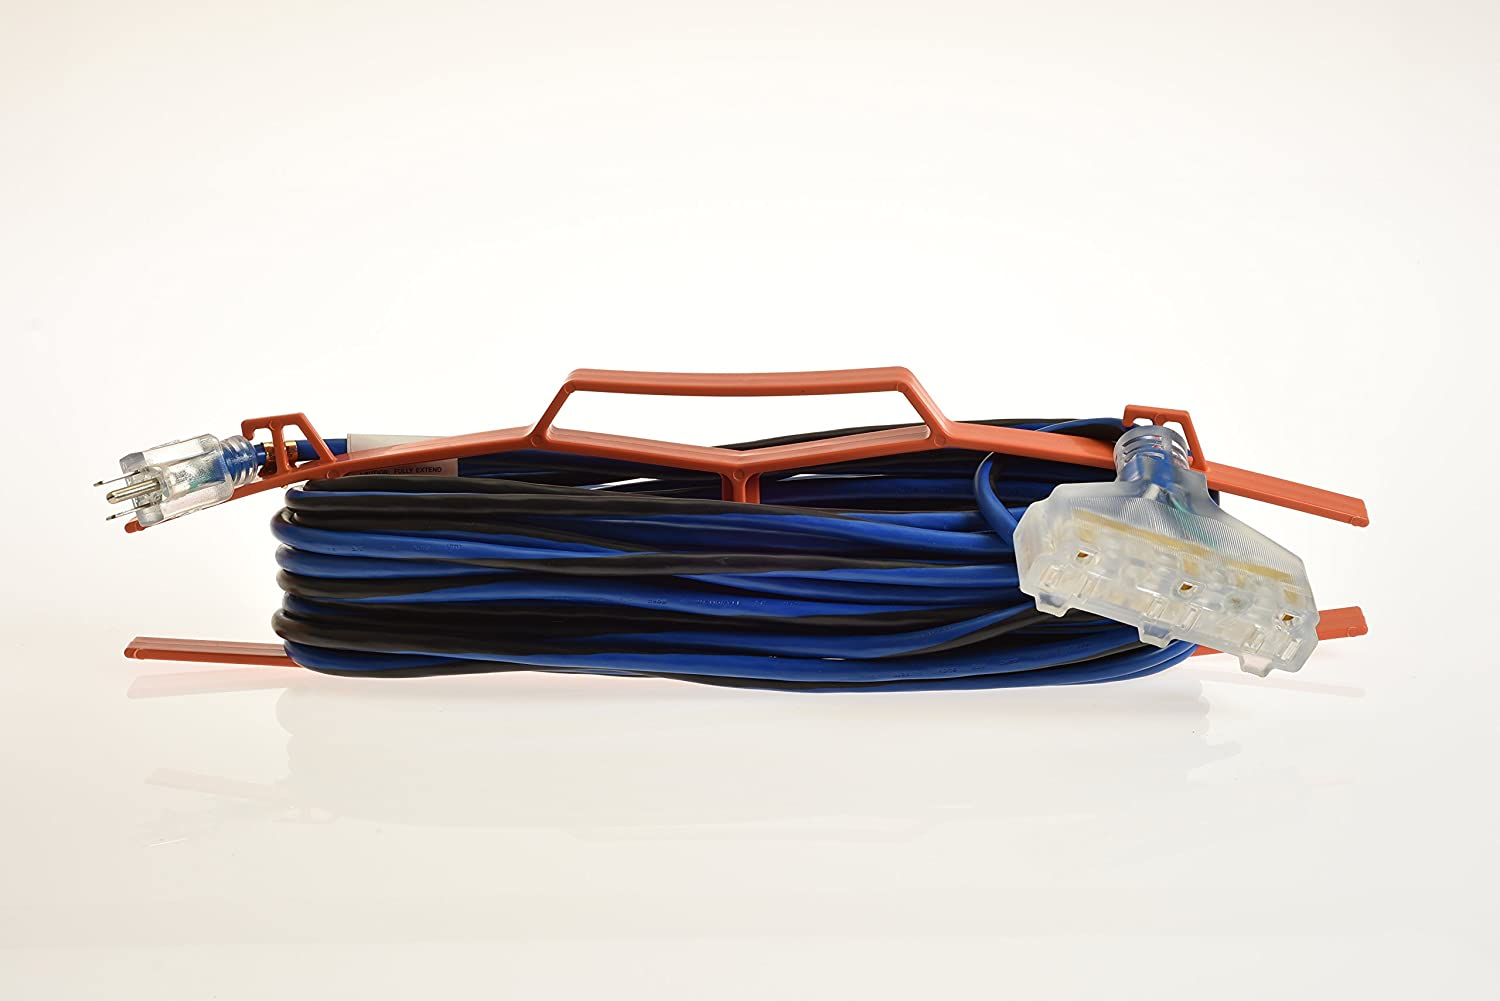 16/3 Gauge Long Extension Cord with Portable Wire Handle Organizer ...